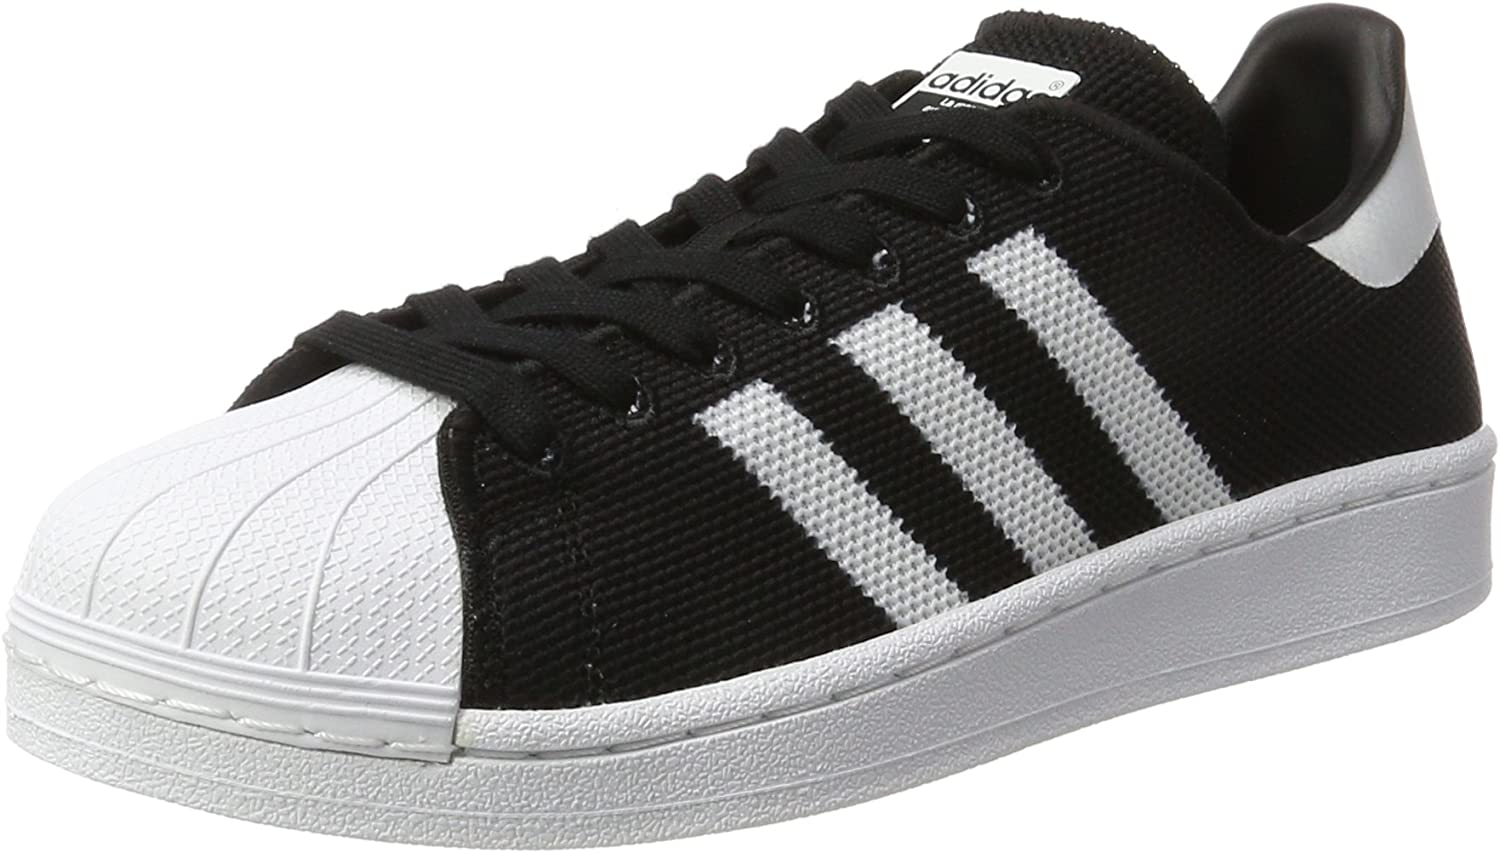 Adidas Unisex Adults' Superstar Sneakers